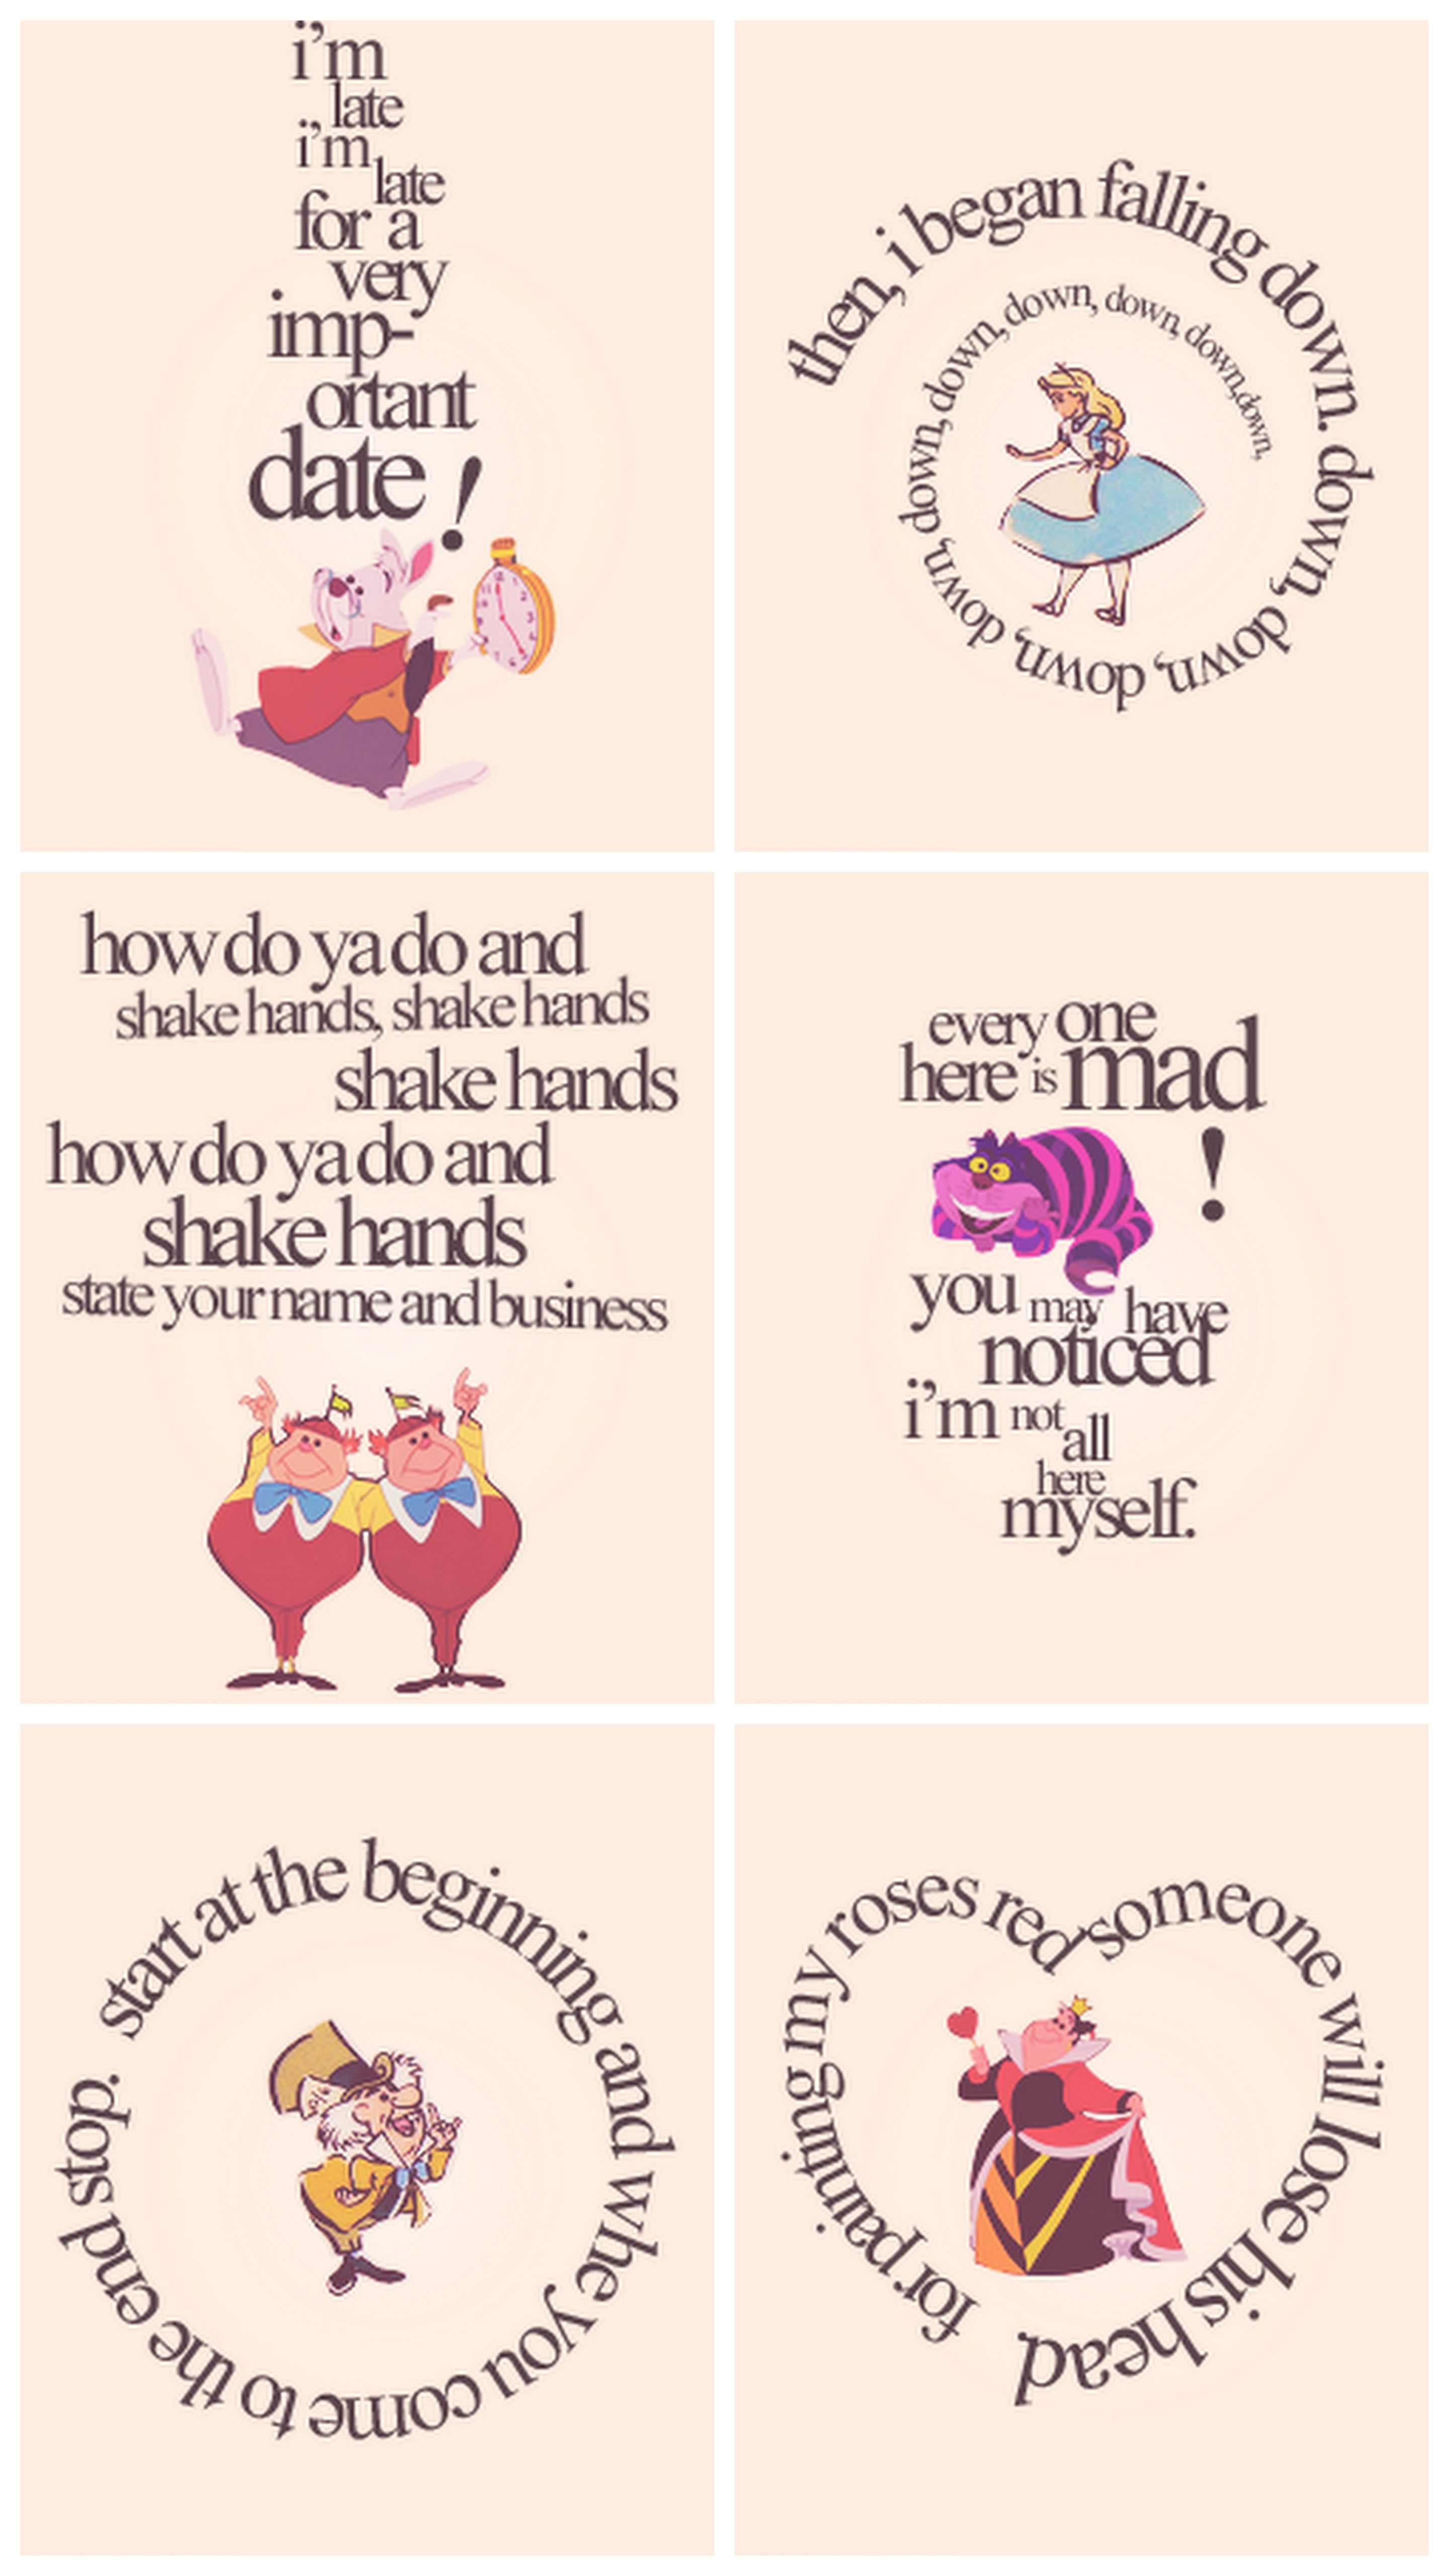 Quotes From Alice In Wonderland Can Put These In Cheap Ikea Frames For Decoration  Adelyn Bday